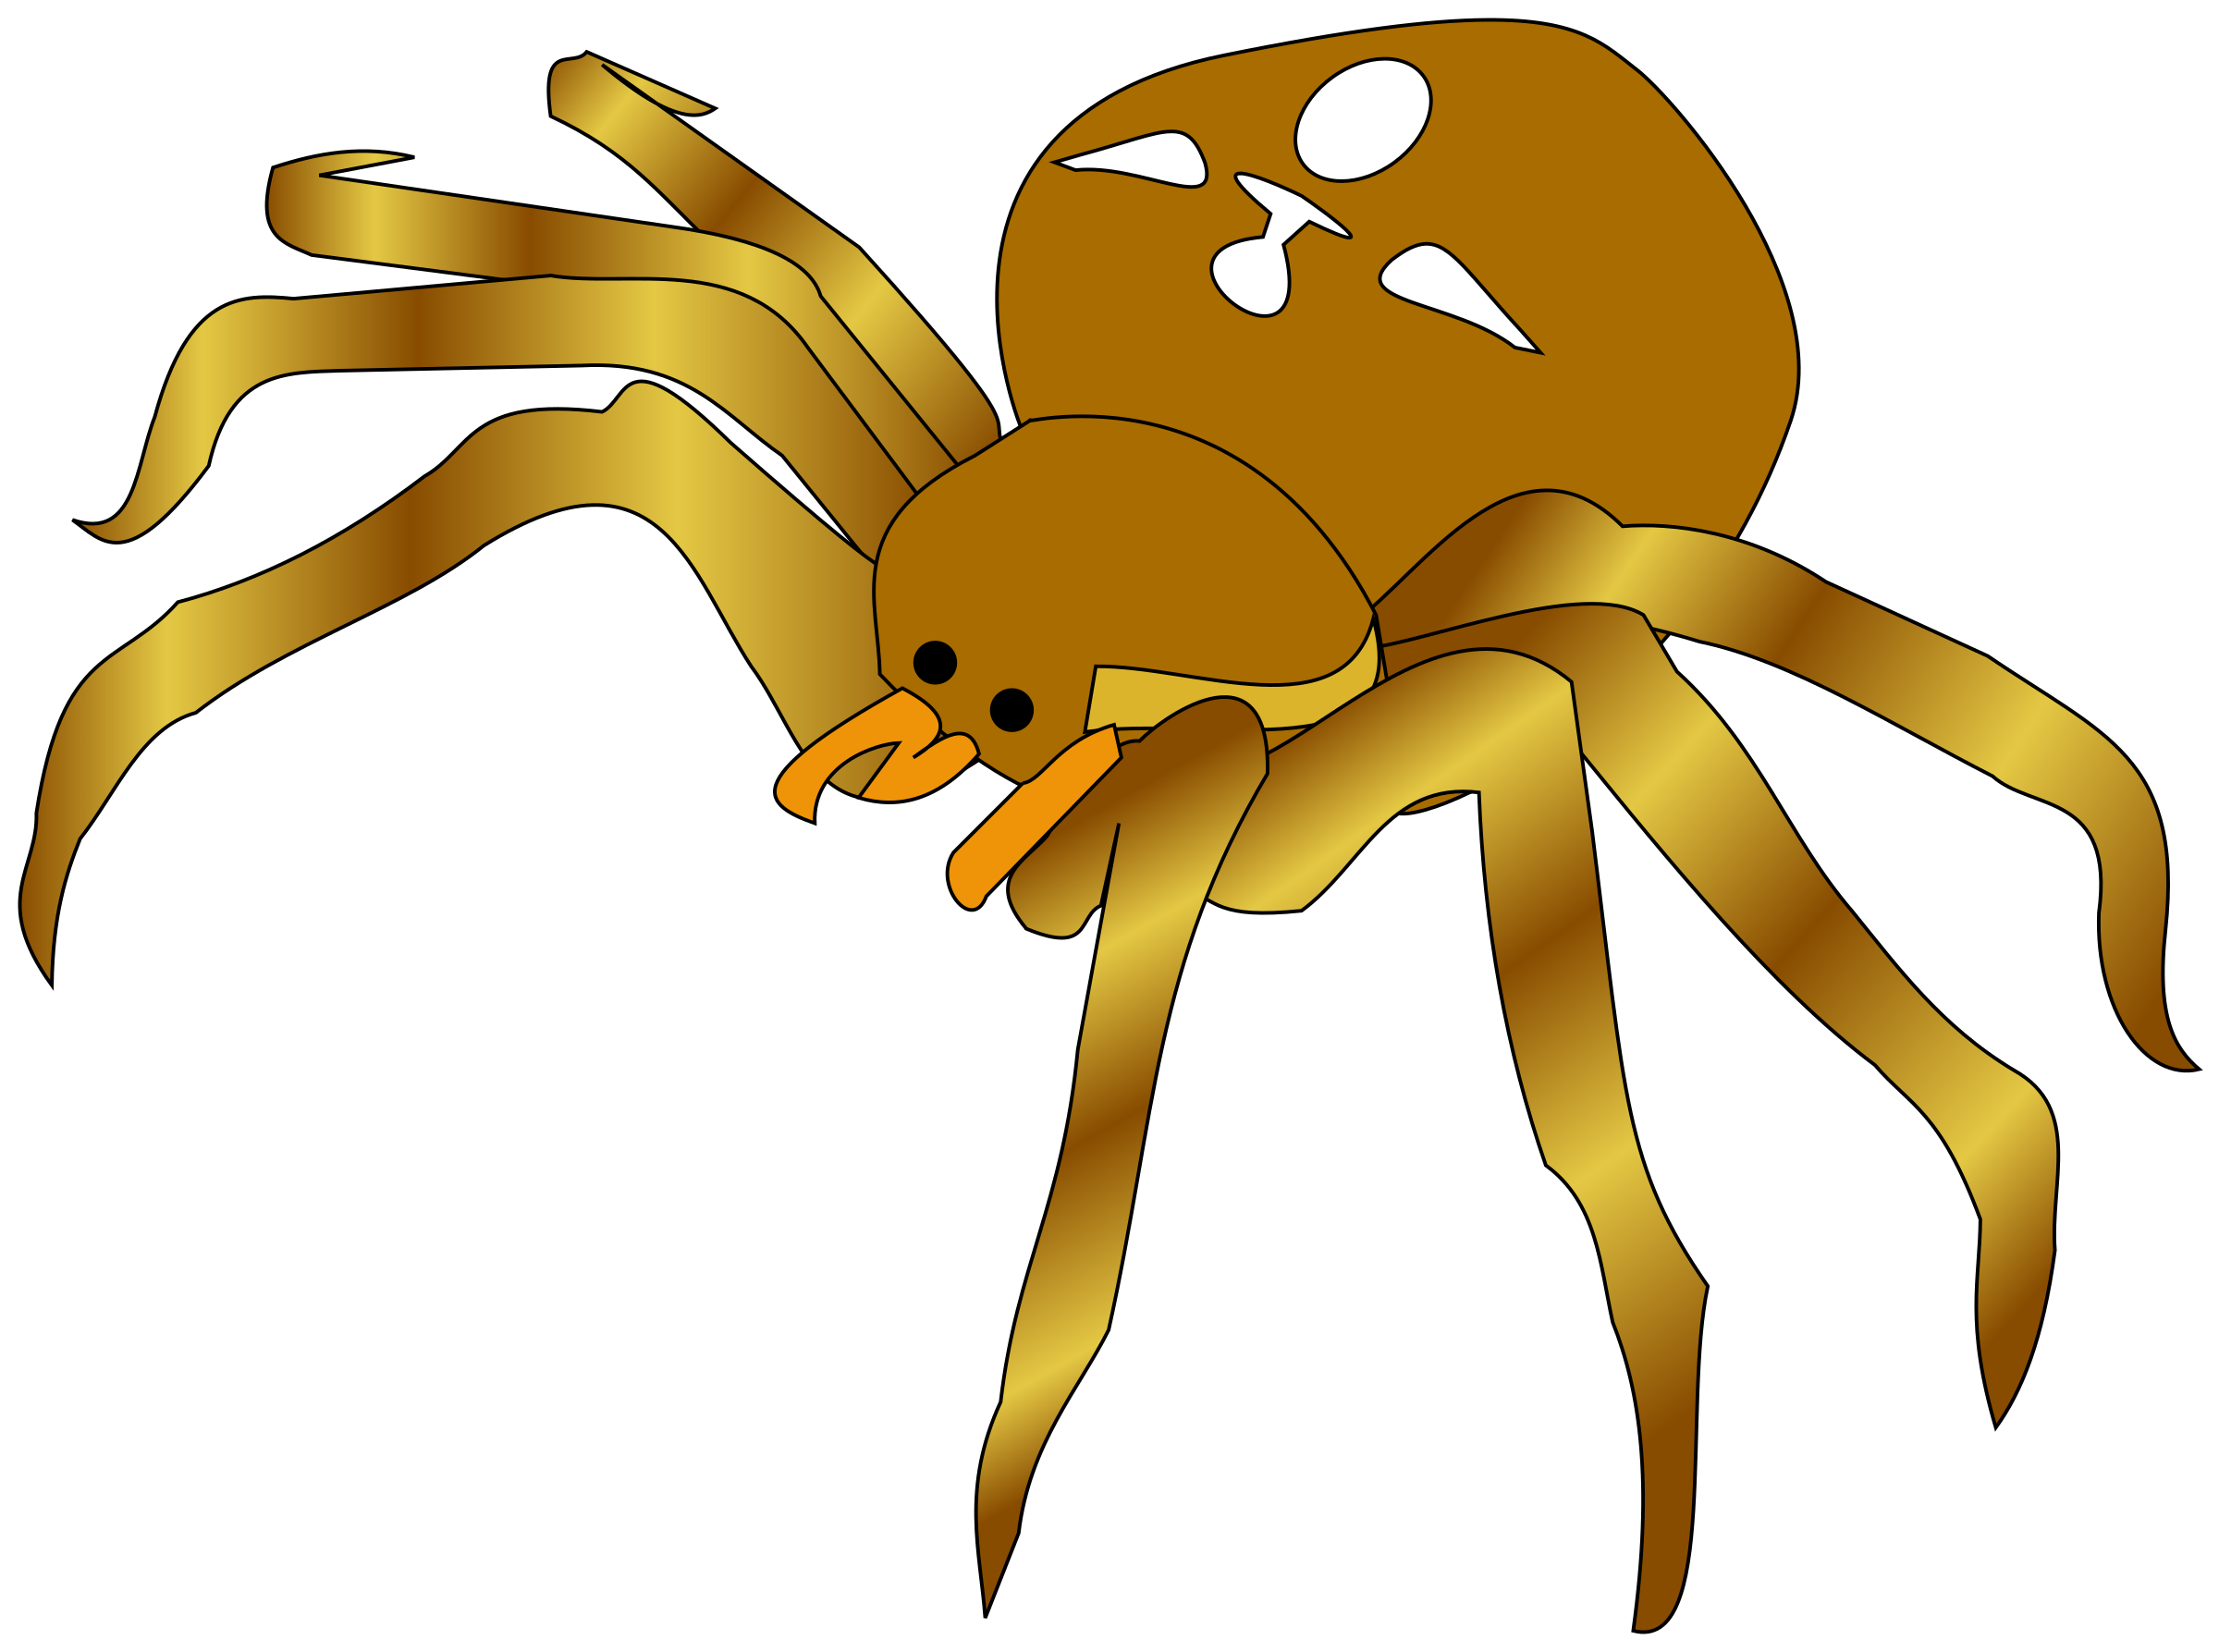 Rodney the Spider by opensourcebear